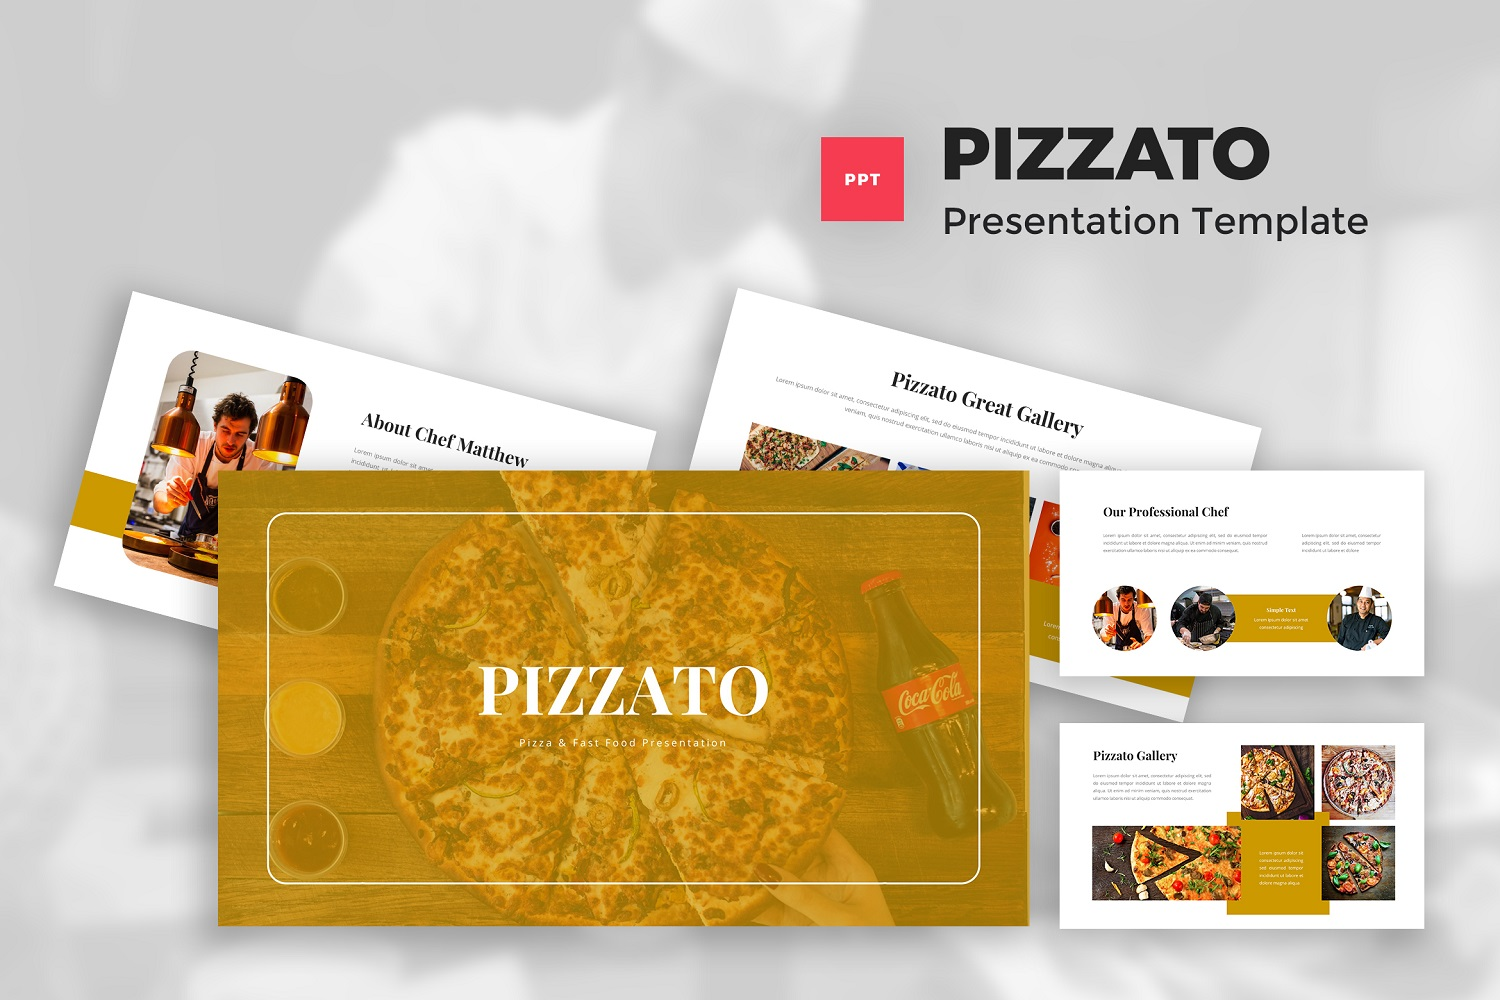 Pizzato - Pizza & Fast Food Powerpoint Template